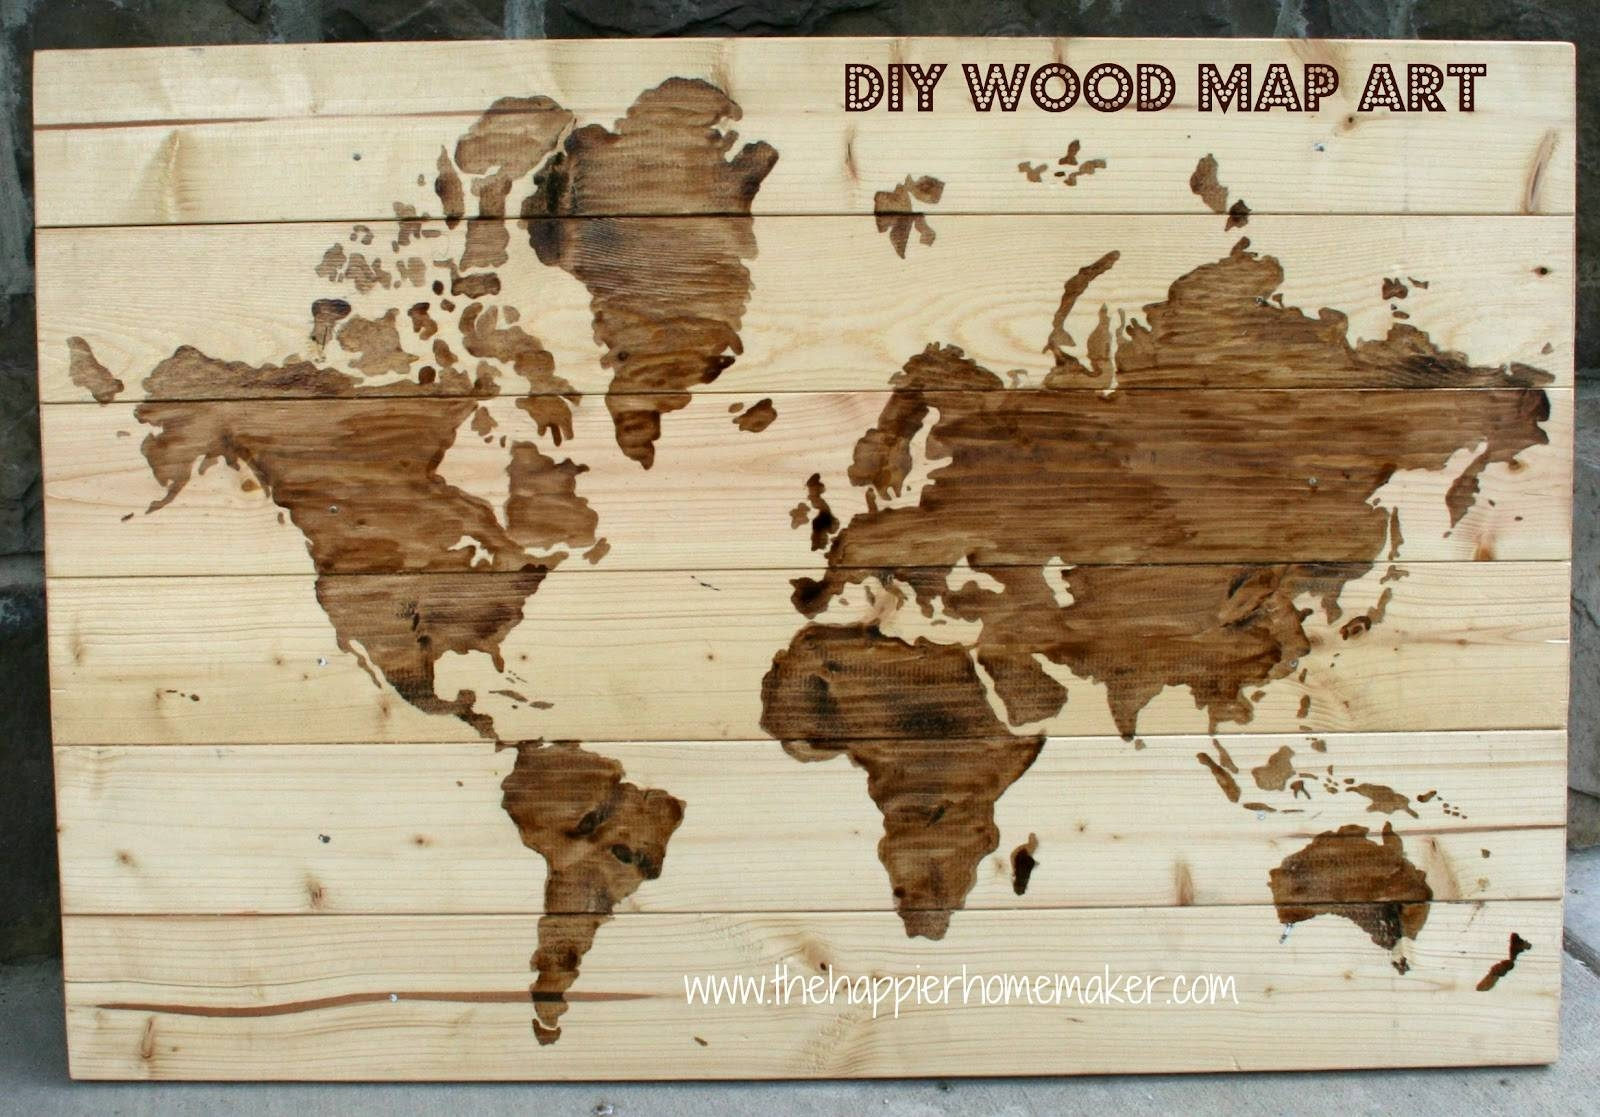 Diy Wooden World Map Art | The Happier Homemaker Intended For Most Up To Date Wooden World Map Wall Art (View 9 of 20)